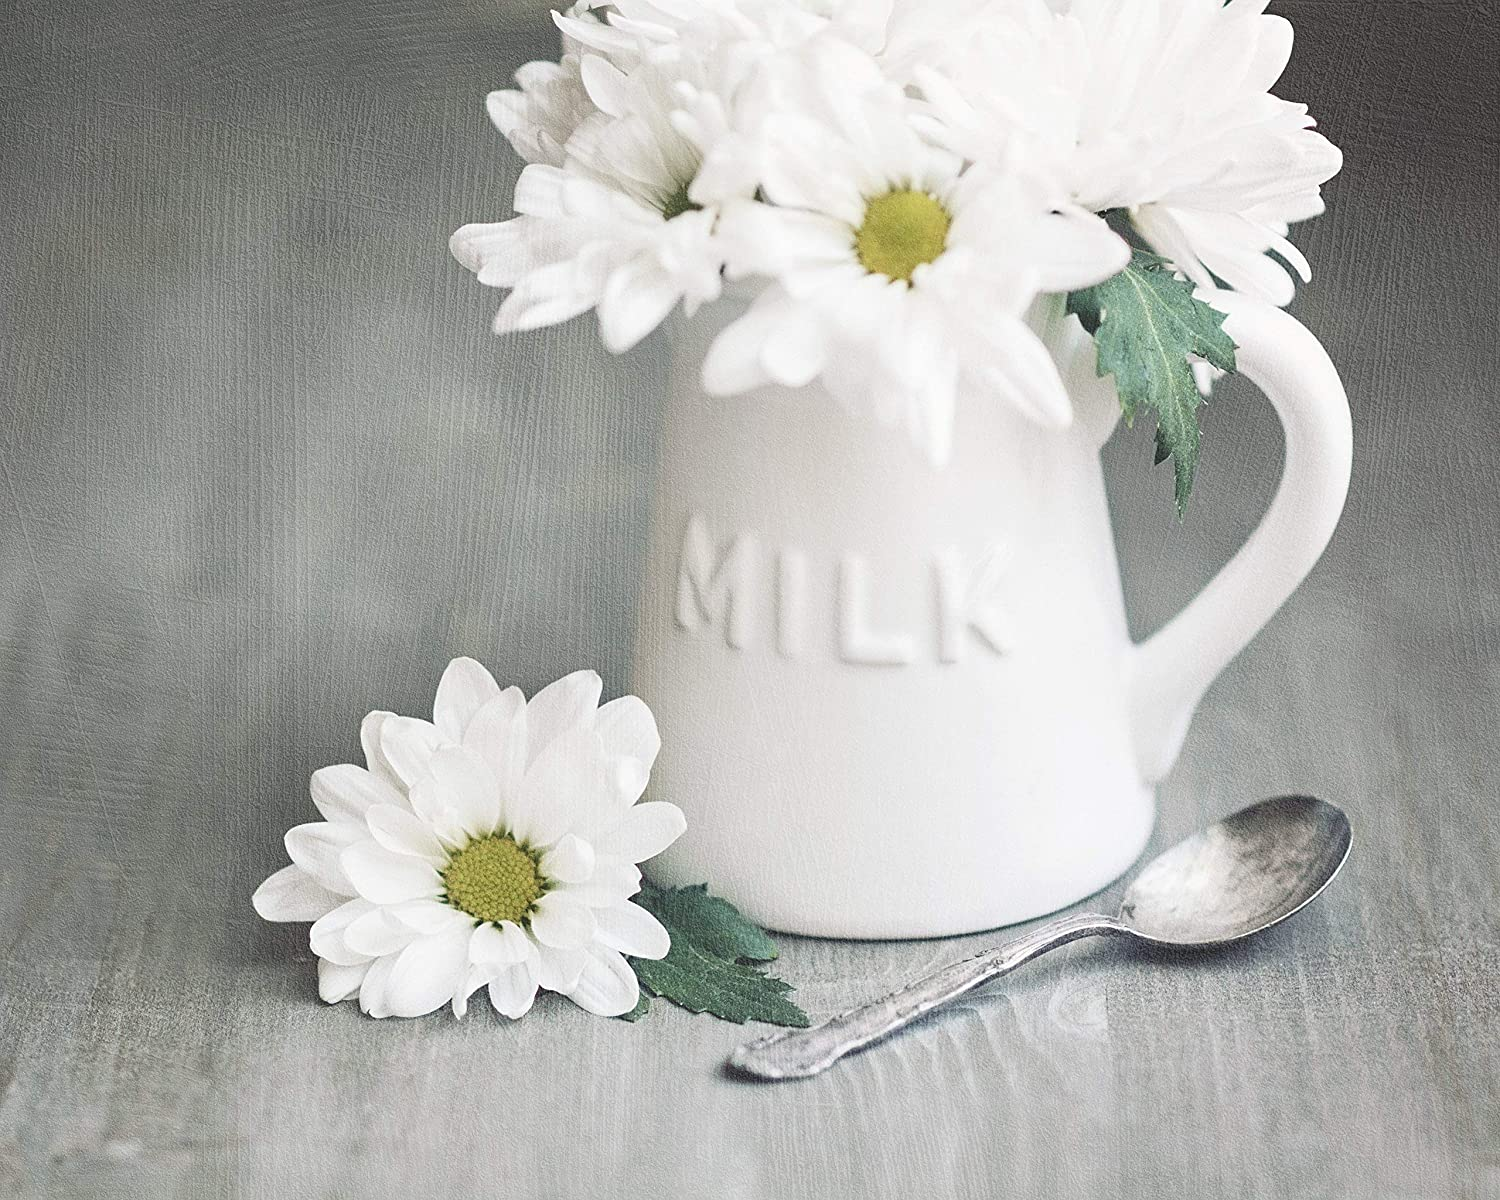 Handmade Products Milk Creamer Jug With White Daisies Photo Print Daisy Photo Rustic Art For Kitchen Farmhouse Wall Decor Country Kitchen Decor White Kitchen Wall Art White And Gray Art Home